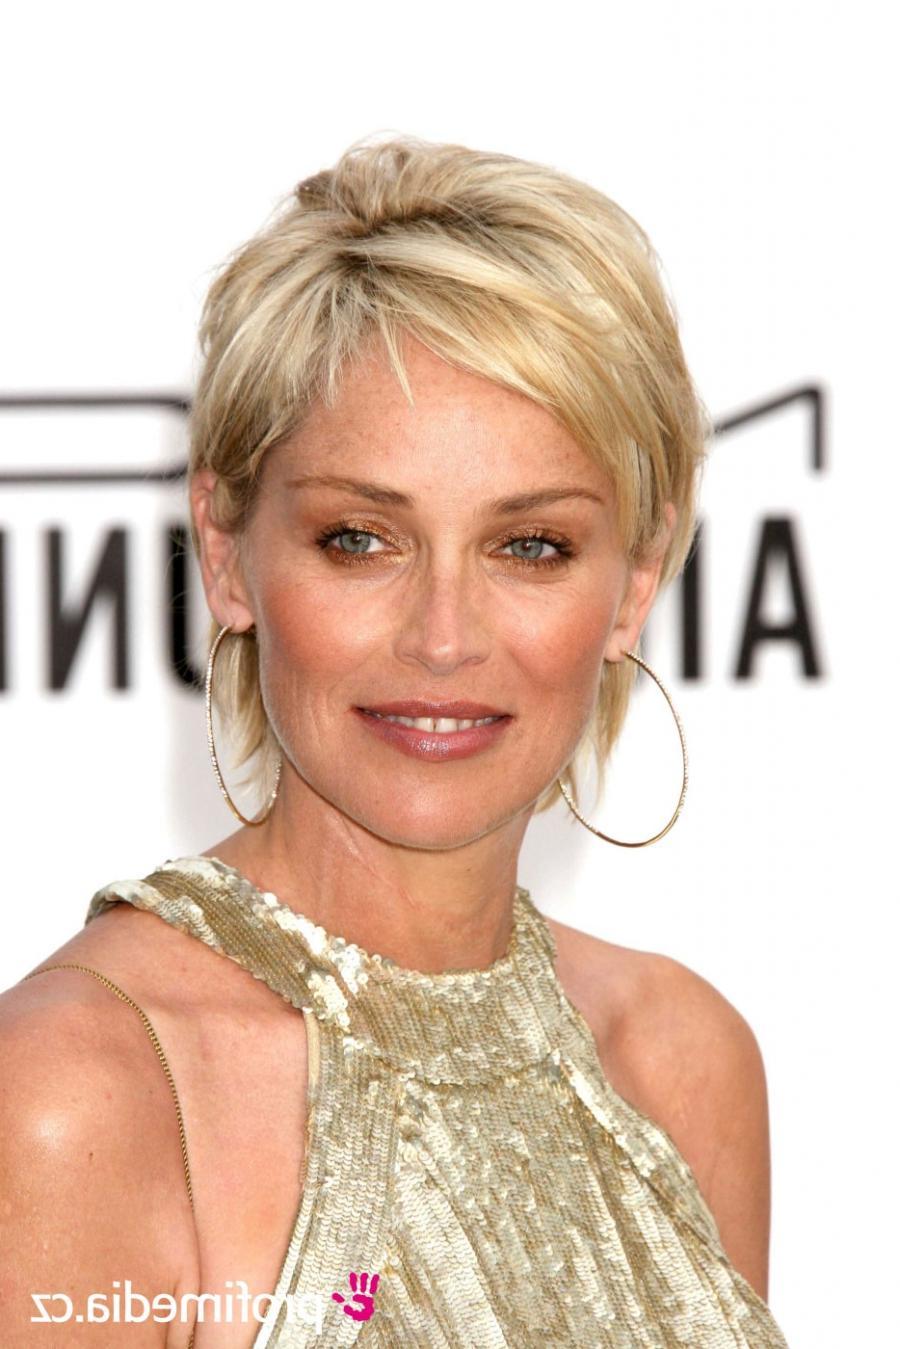 Sharon Stone nudes (69 photos), video Ass, Instagram, legs 2017